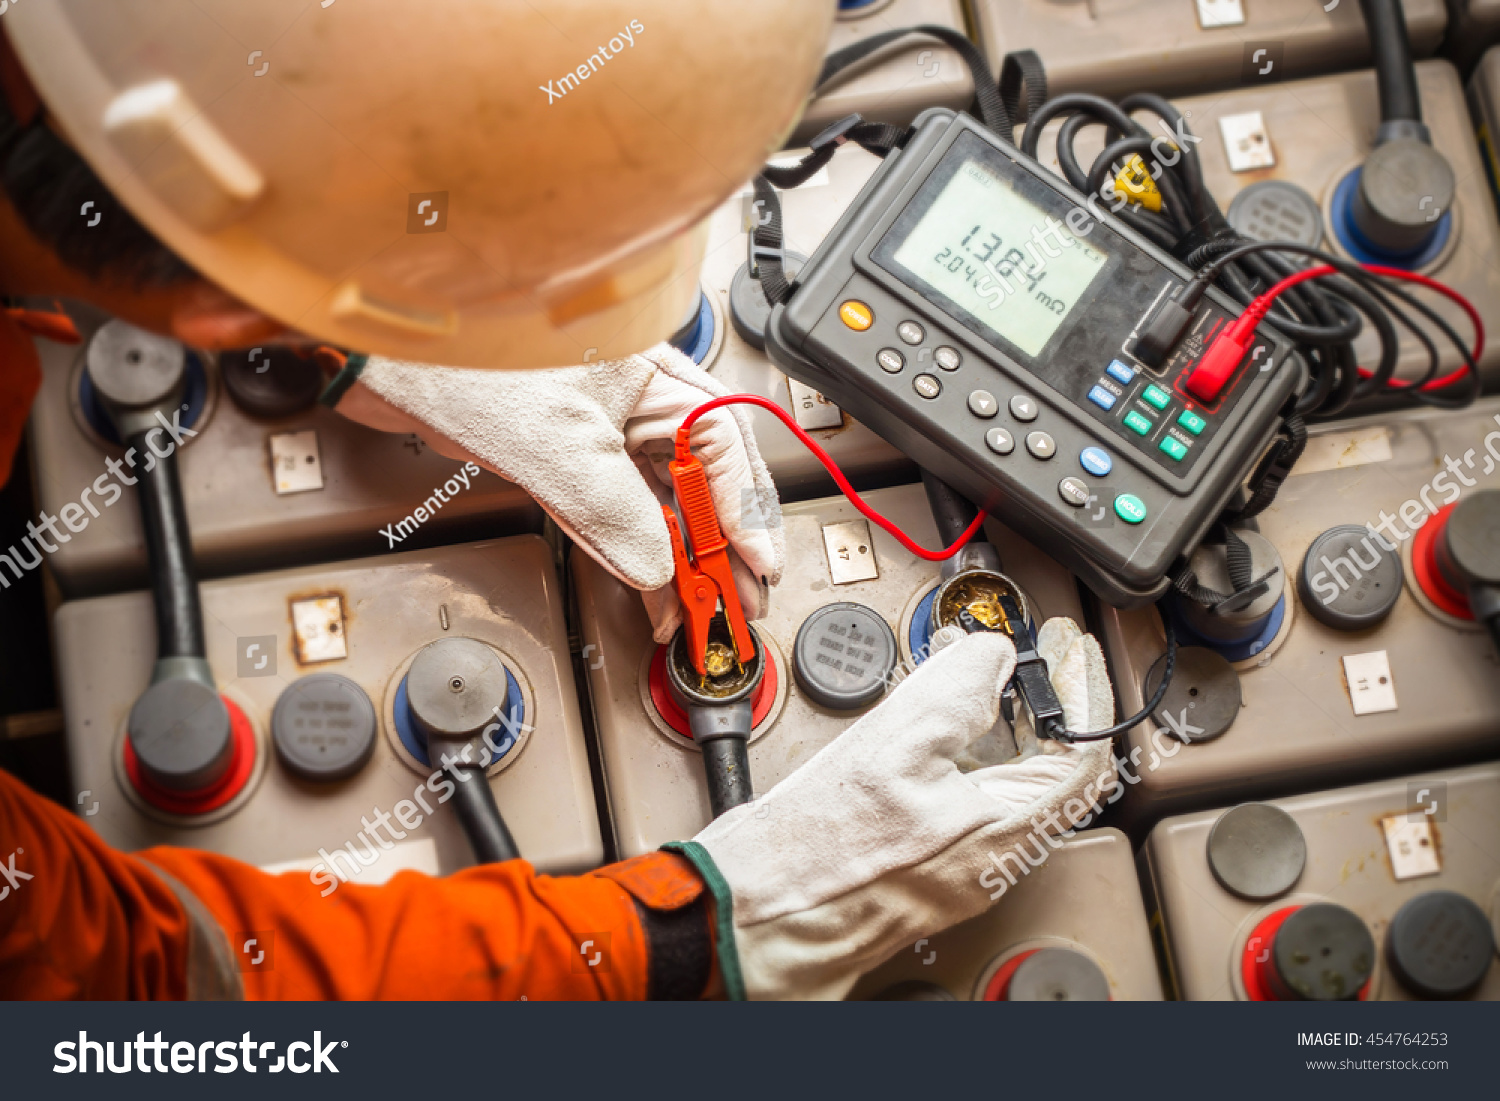 Electrician Using Digital Battery Tester Check Stock Photo Edit Now Electrical Testers The To Resistance And Voltage Of Batteries